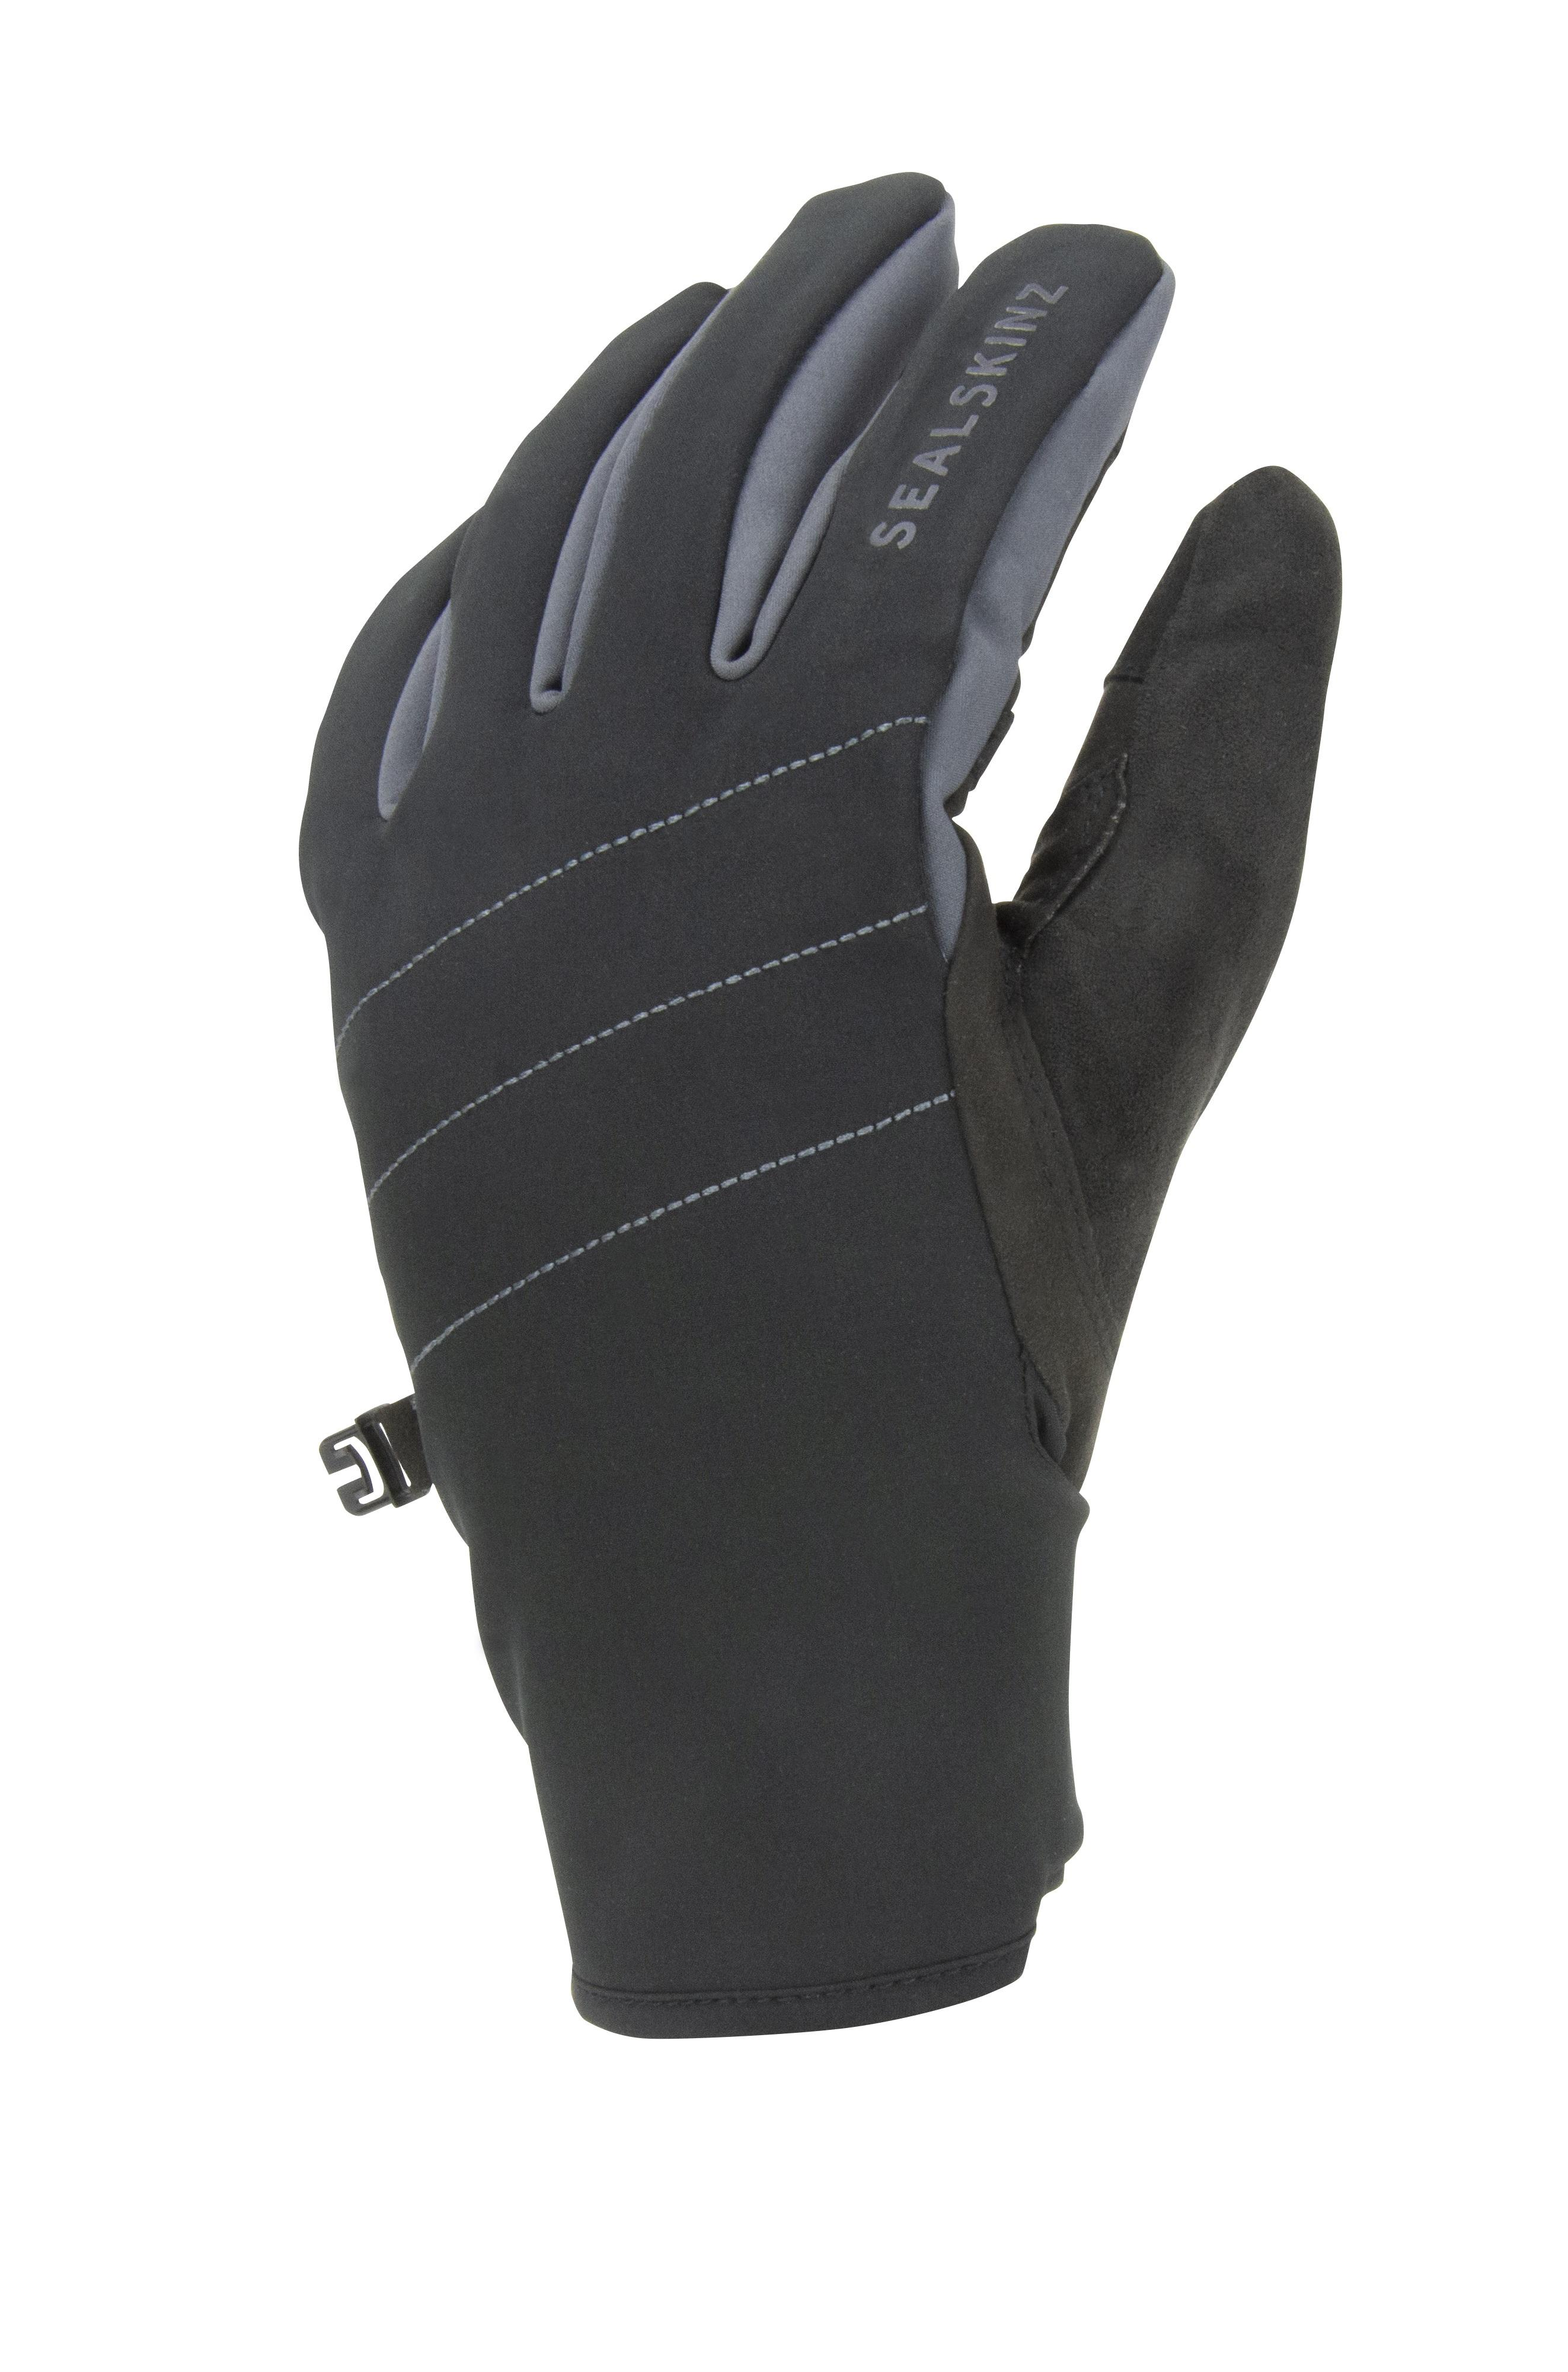 Sealskinz Fietshandschoenen Waterdicht Unisex Zwart Grijs - Waterproof All Weather Glove with Fusion Control Black Grey